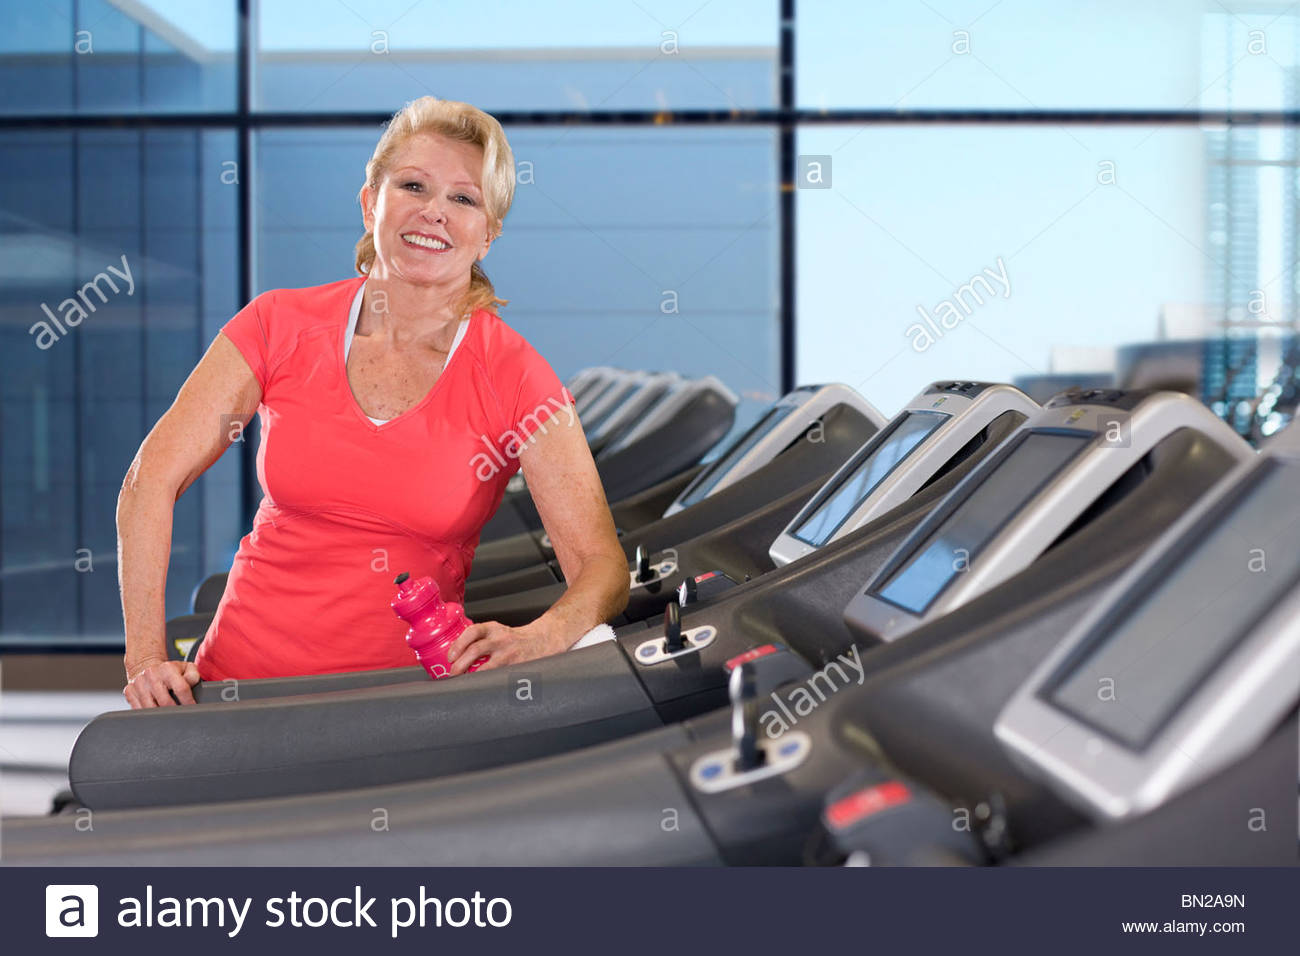 Portrait of smiling senior woman with water bottle on treadmill in health club - Stock Image